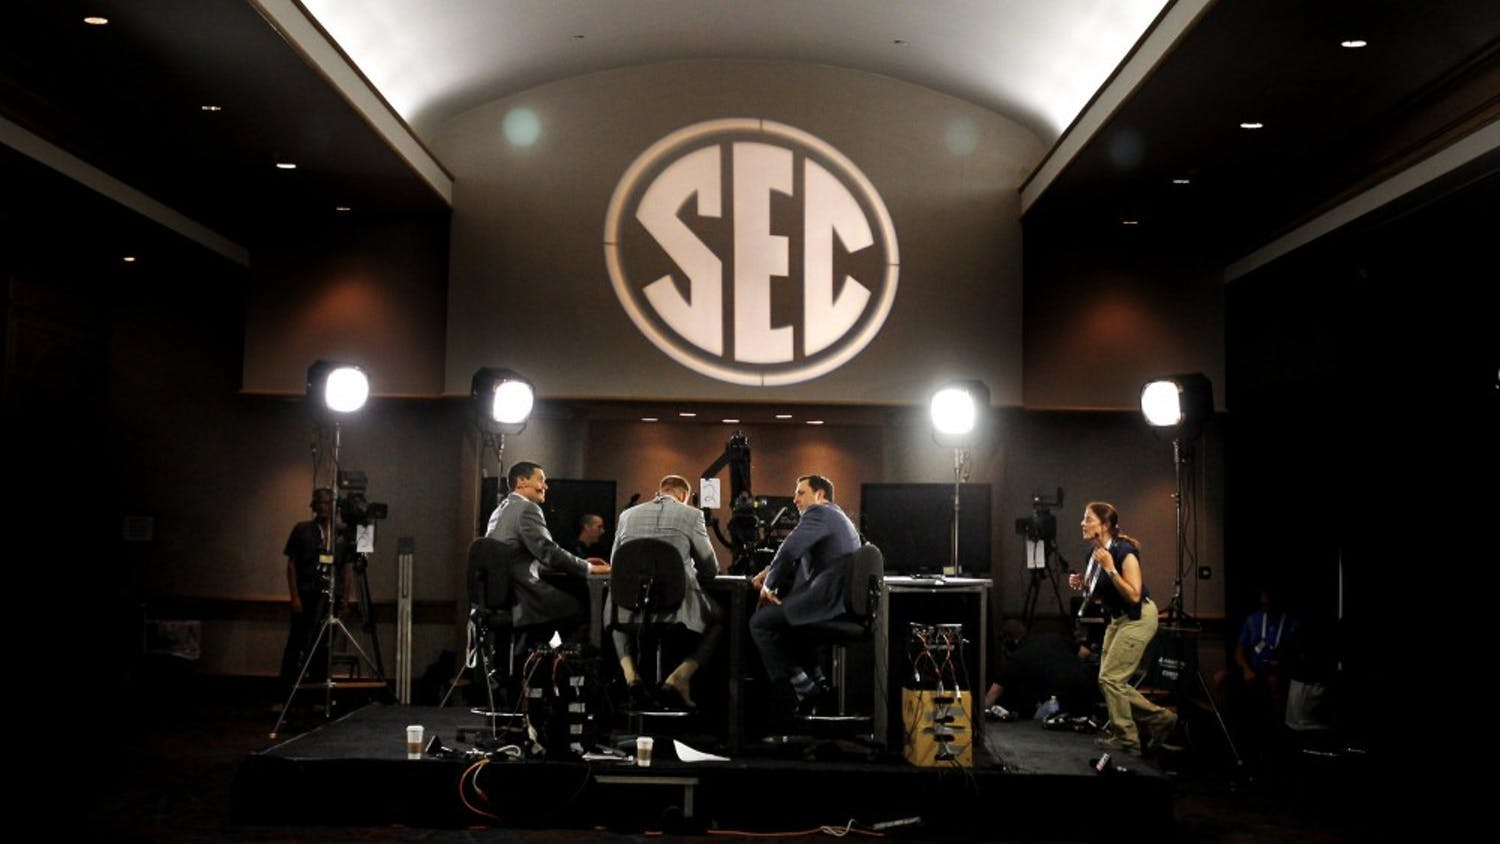 ESPN's presence was strong during SEC football media days in Hoover, Alabama. (Gerry Melendez/The State/MCT)